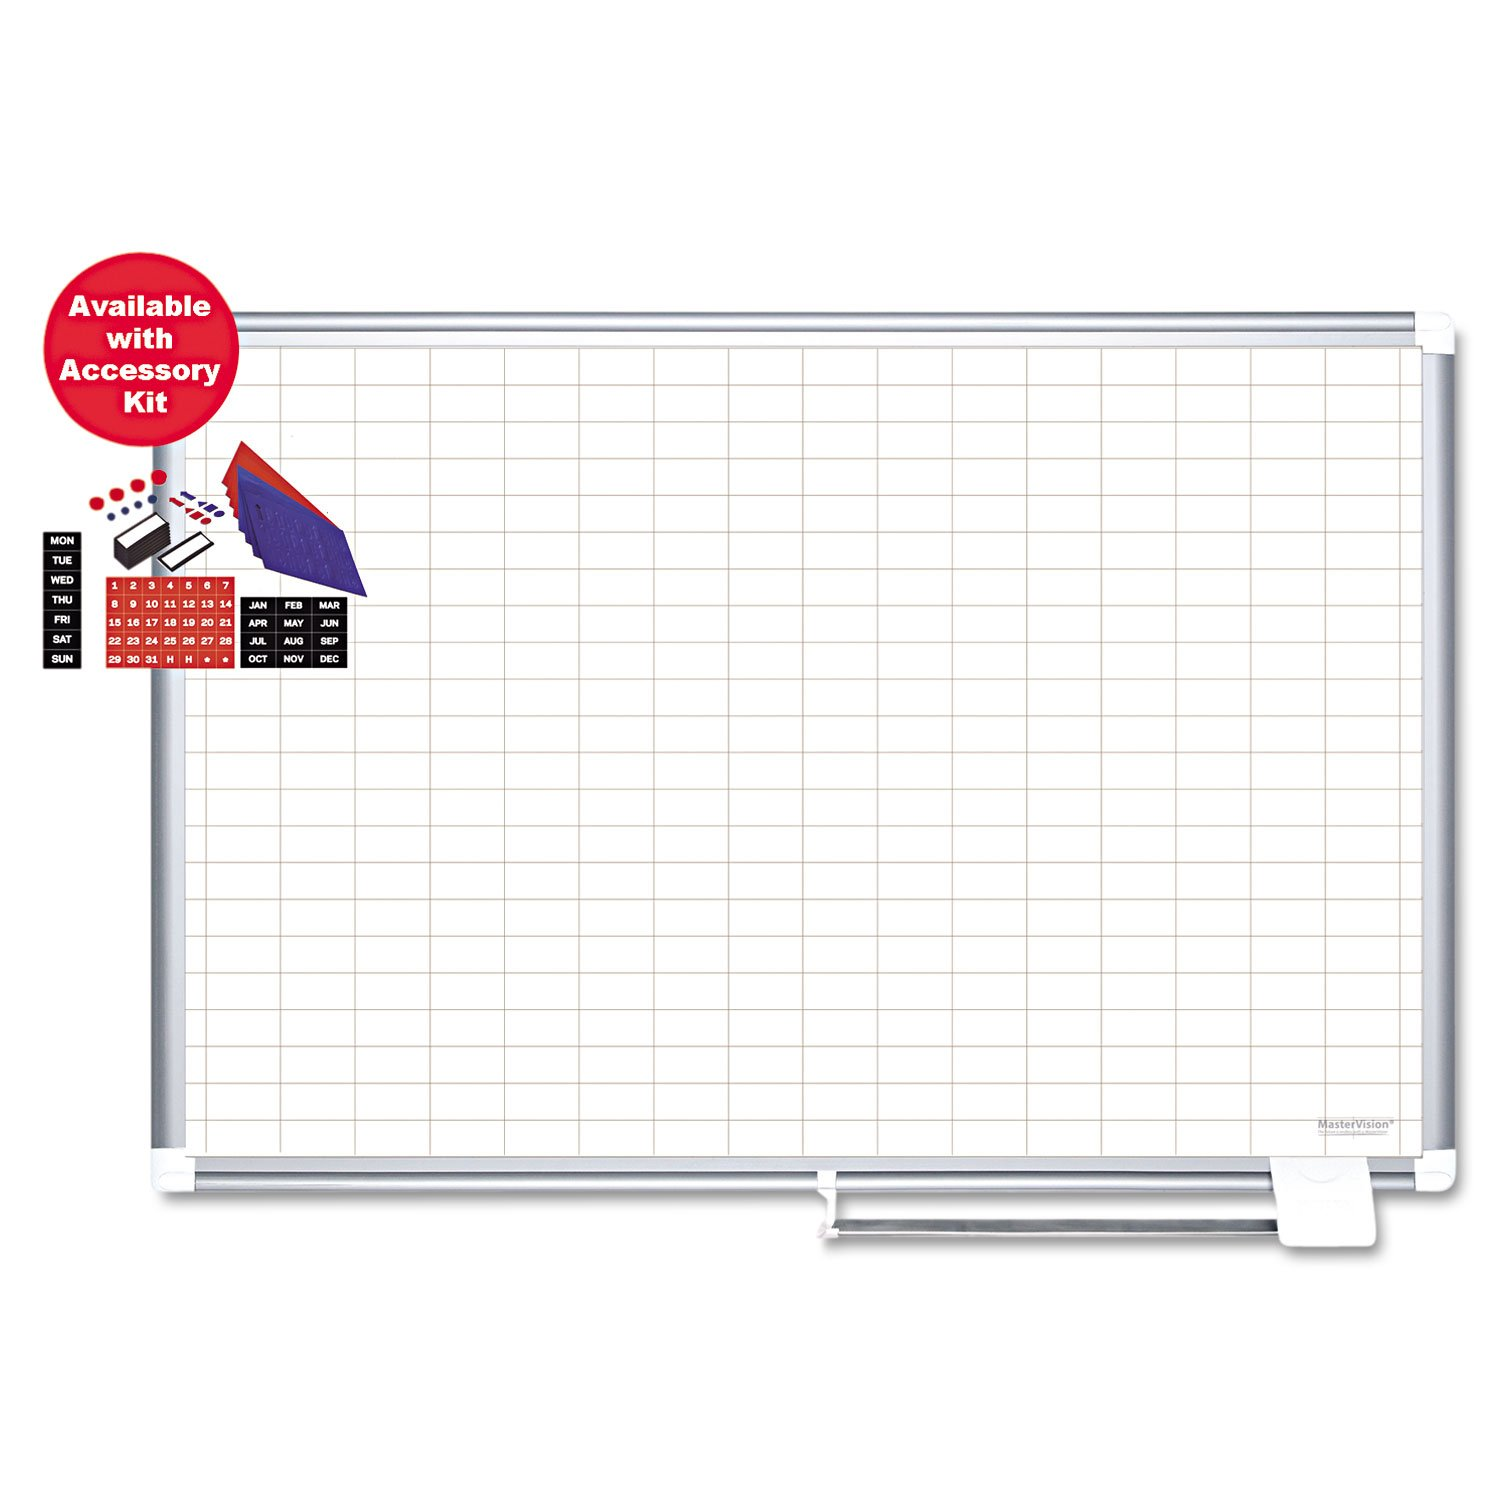 MasterVision Planning Board Magnetic Dry Erase 1'' x 2'' Grid Planner with Accessory Kit, 24'' x 36'', Aluminum Frame by MasterVision